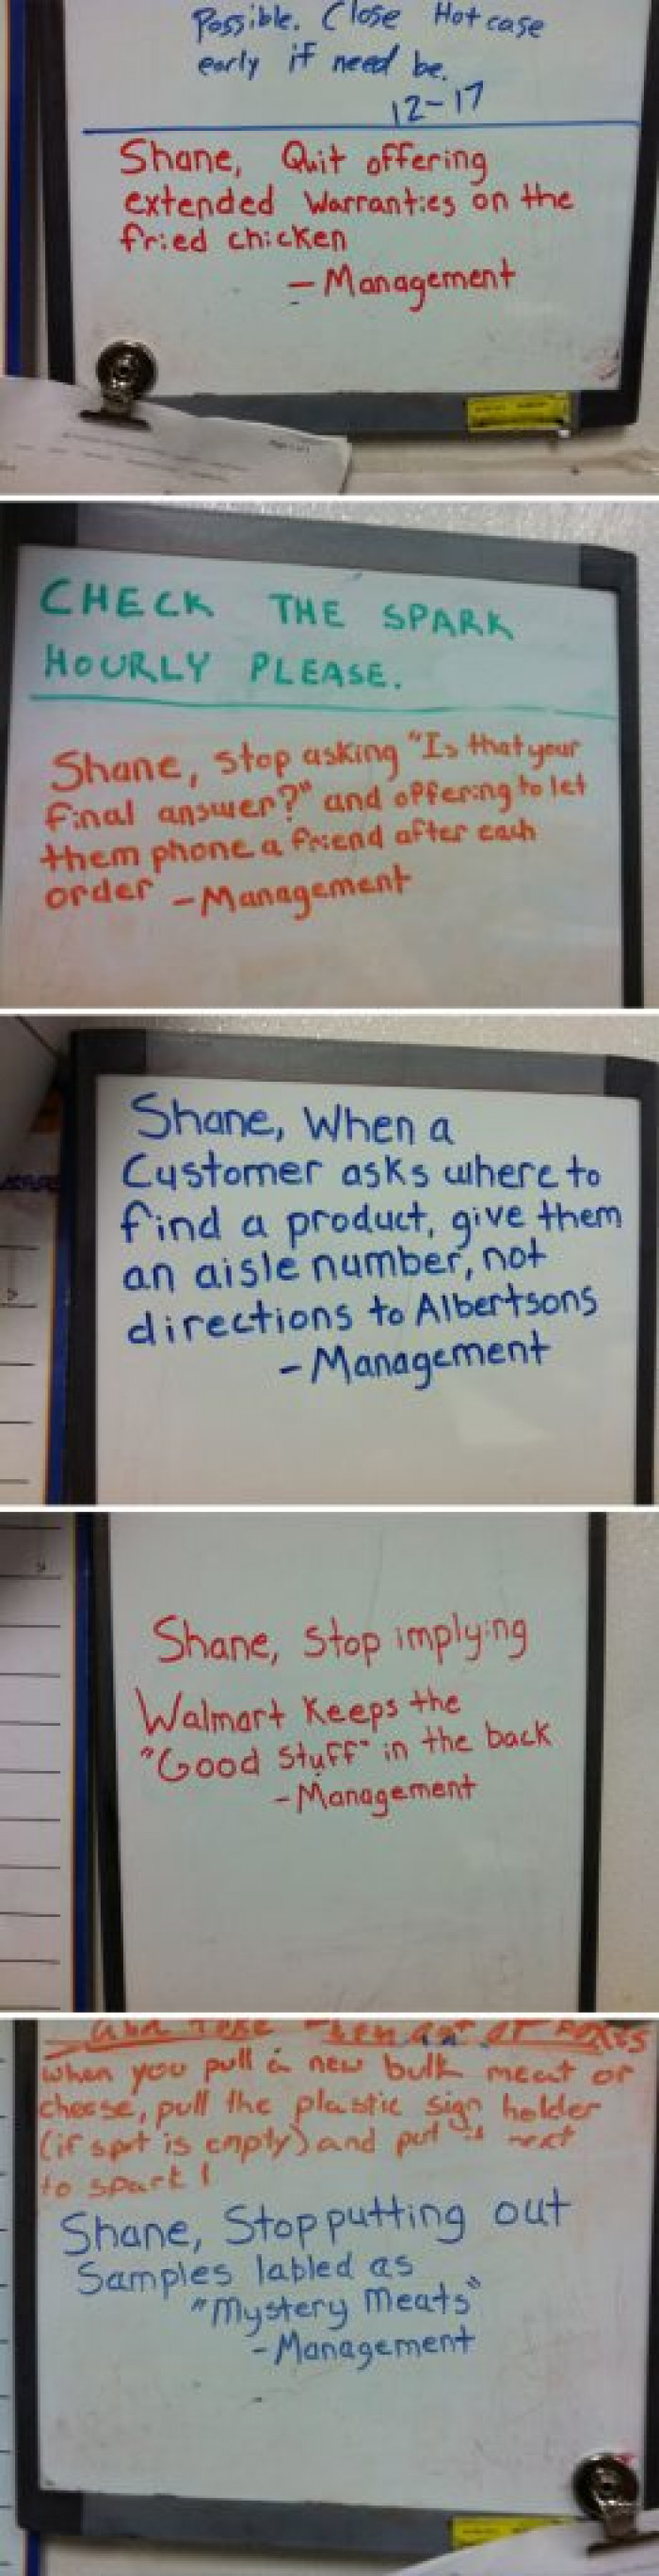 I hope Shane never gets fired